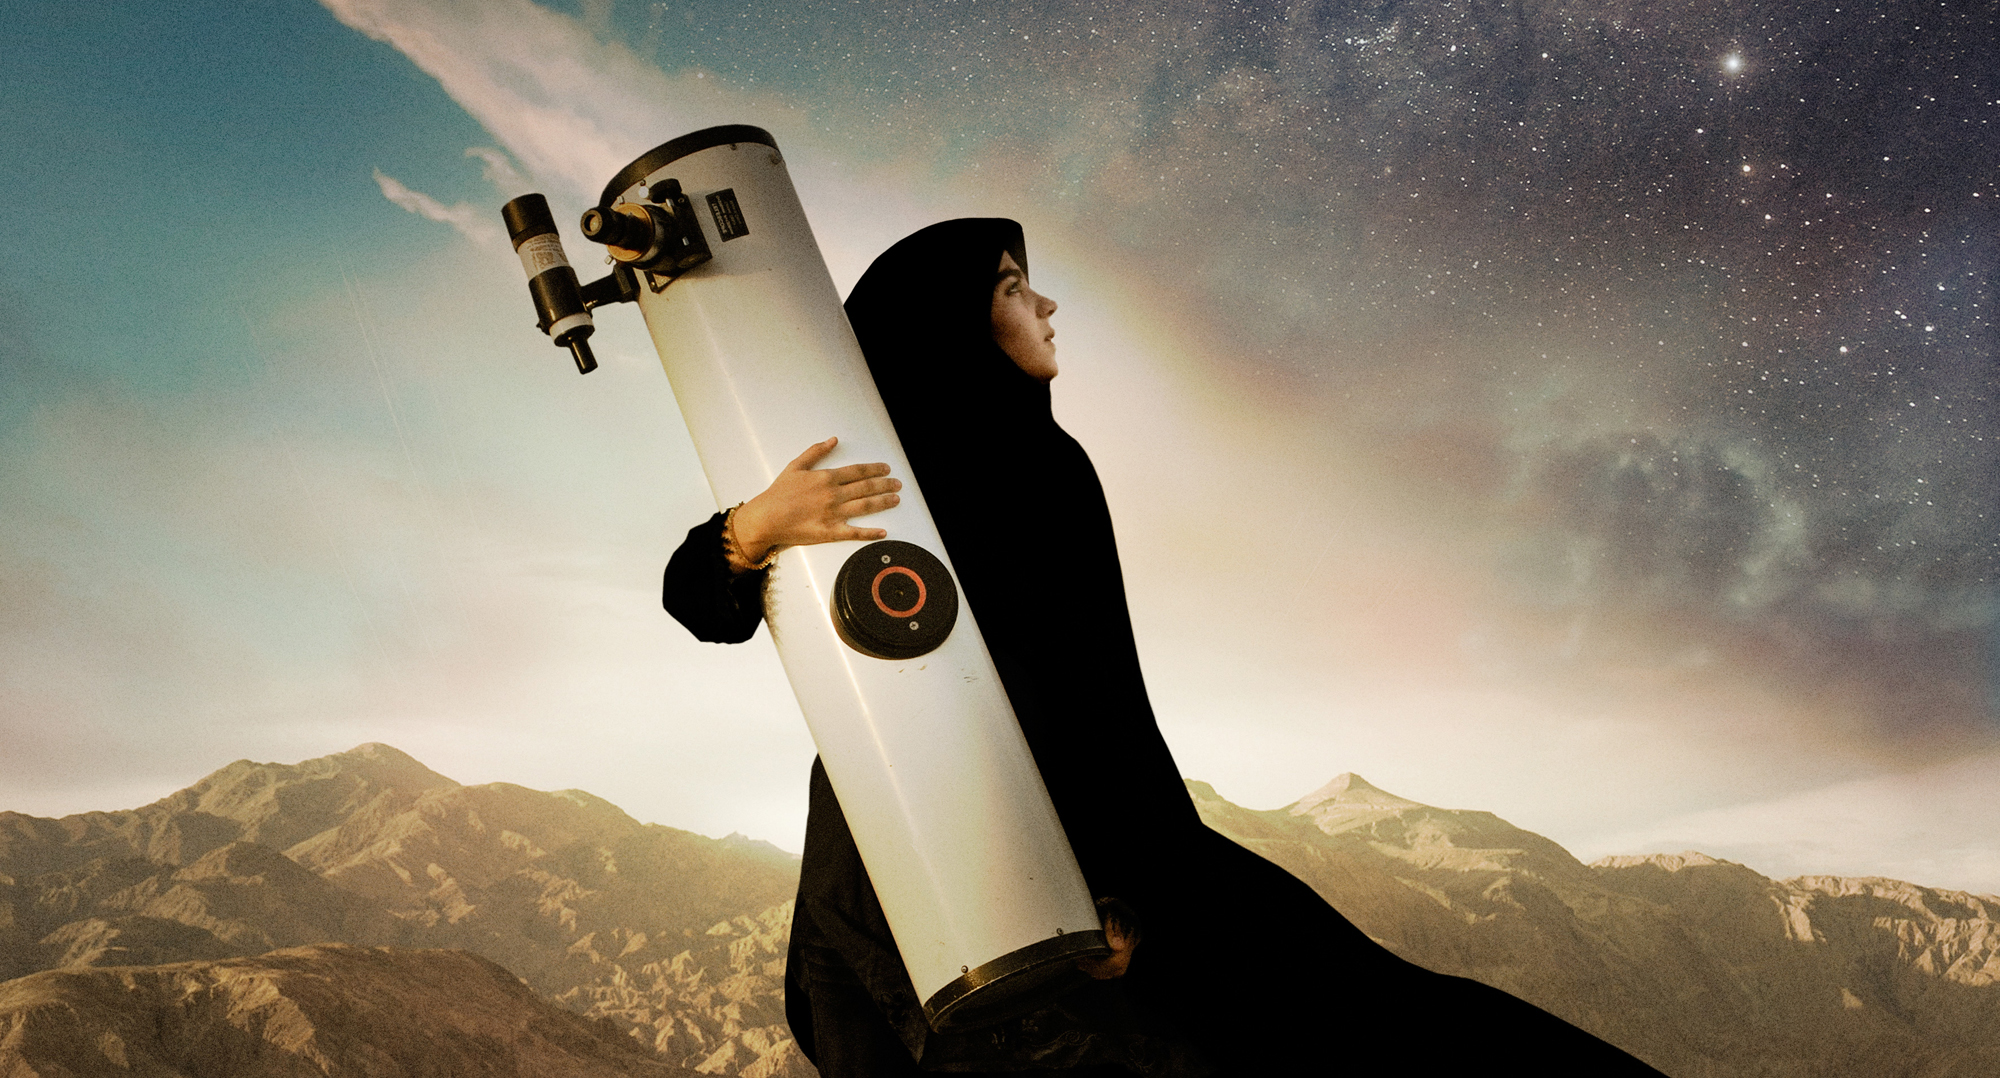 Sepideh - Reaching For The Stars Berit Madsen